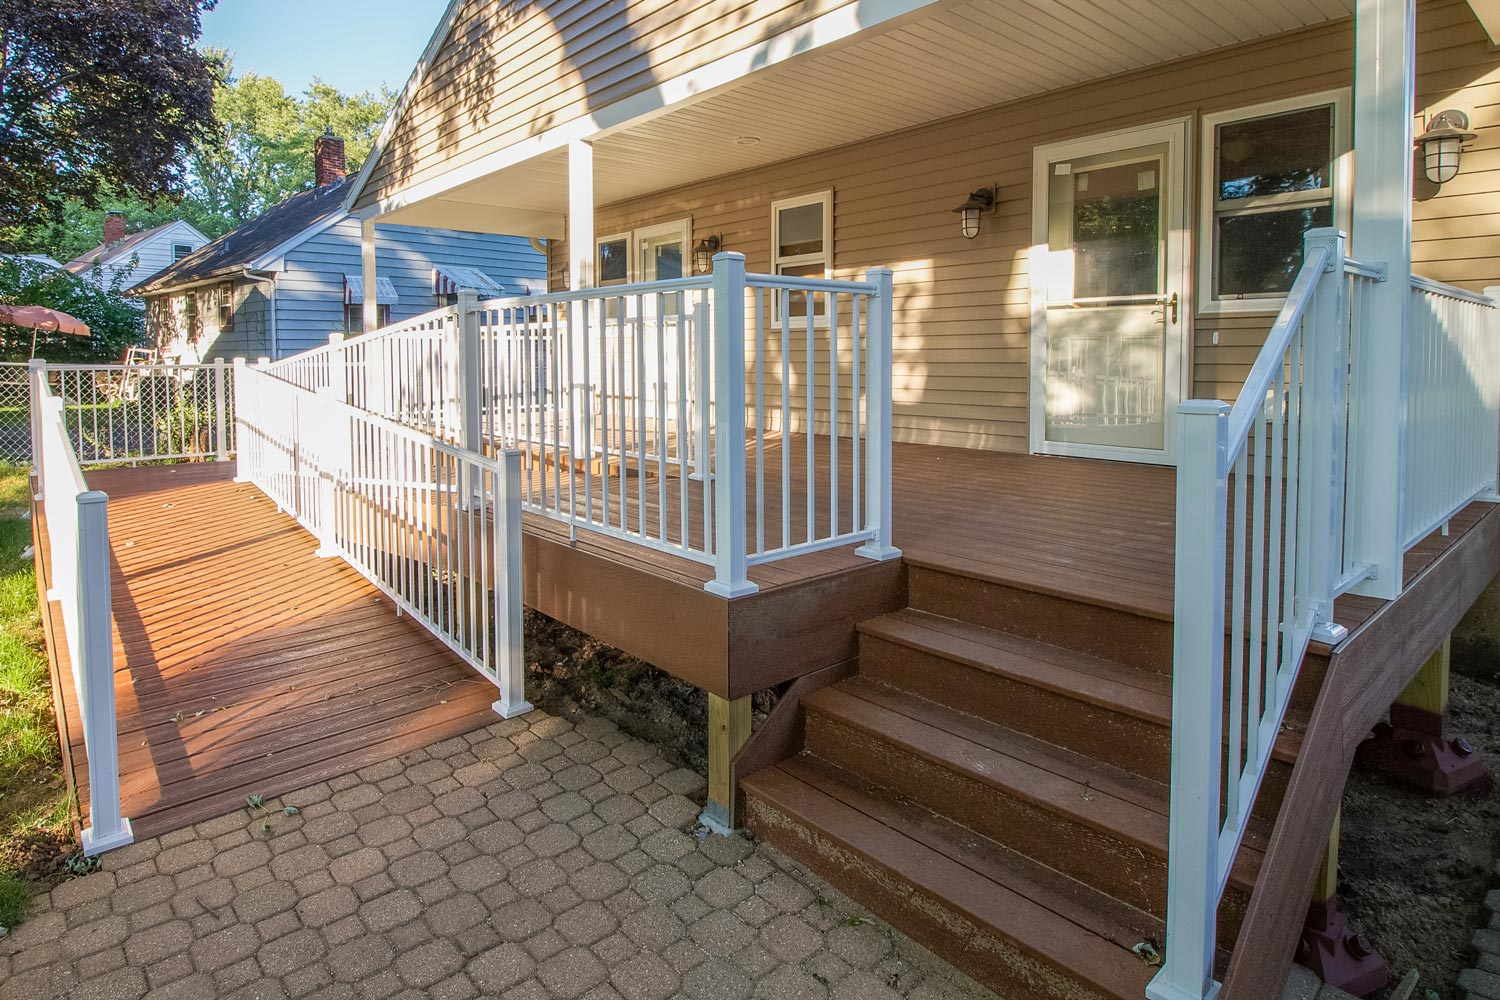 - A covered back porch provides a comfortable outdoor space integrated with the ramp in this aging-in-place remodel.